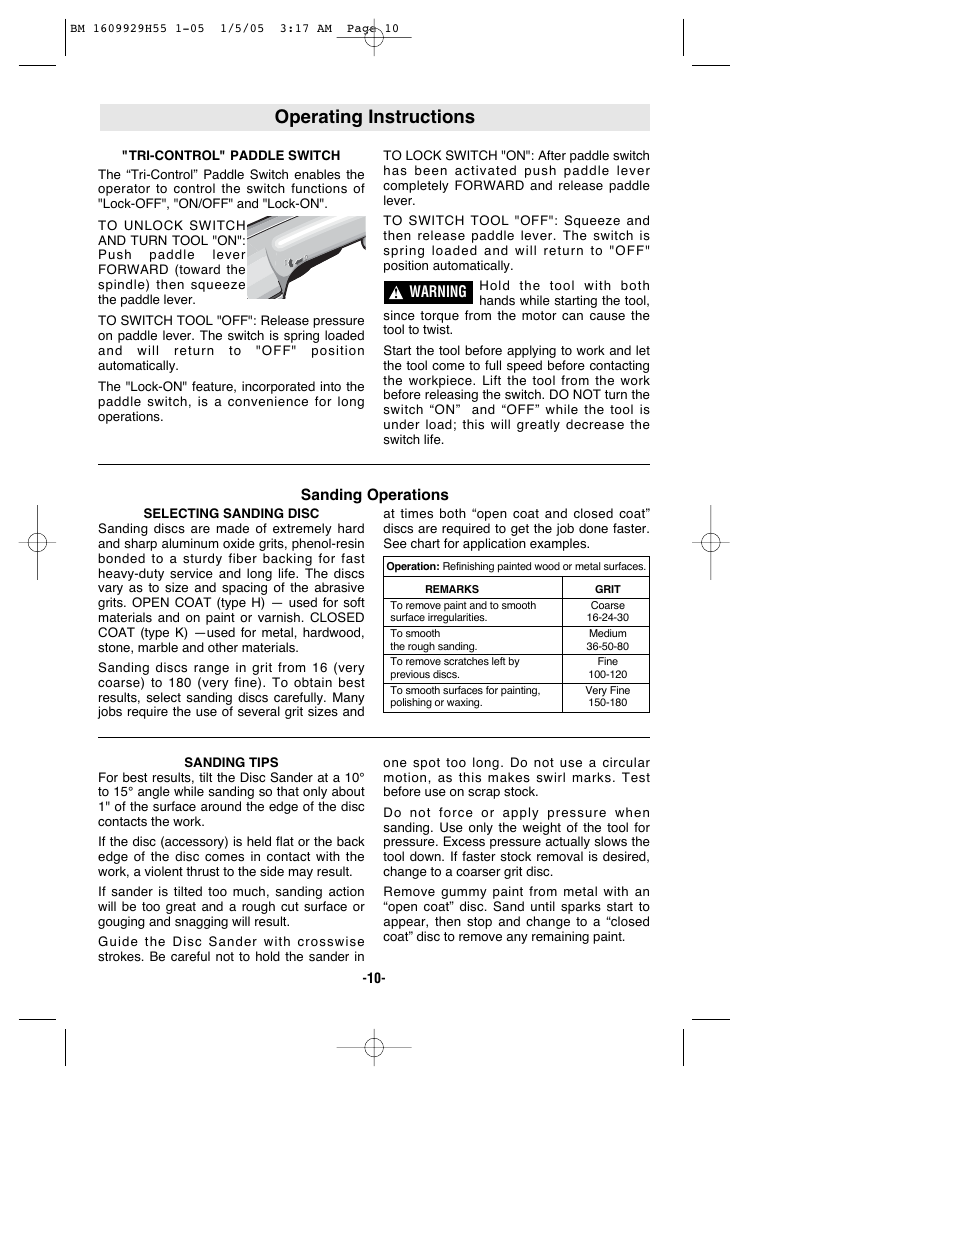 Operating Instructions Bosch Classixx 1853 5 User Manual Page 10